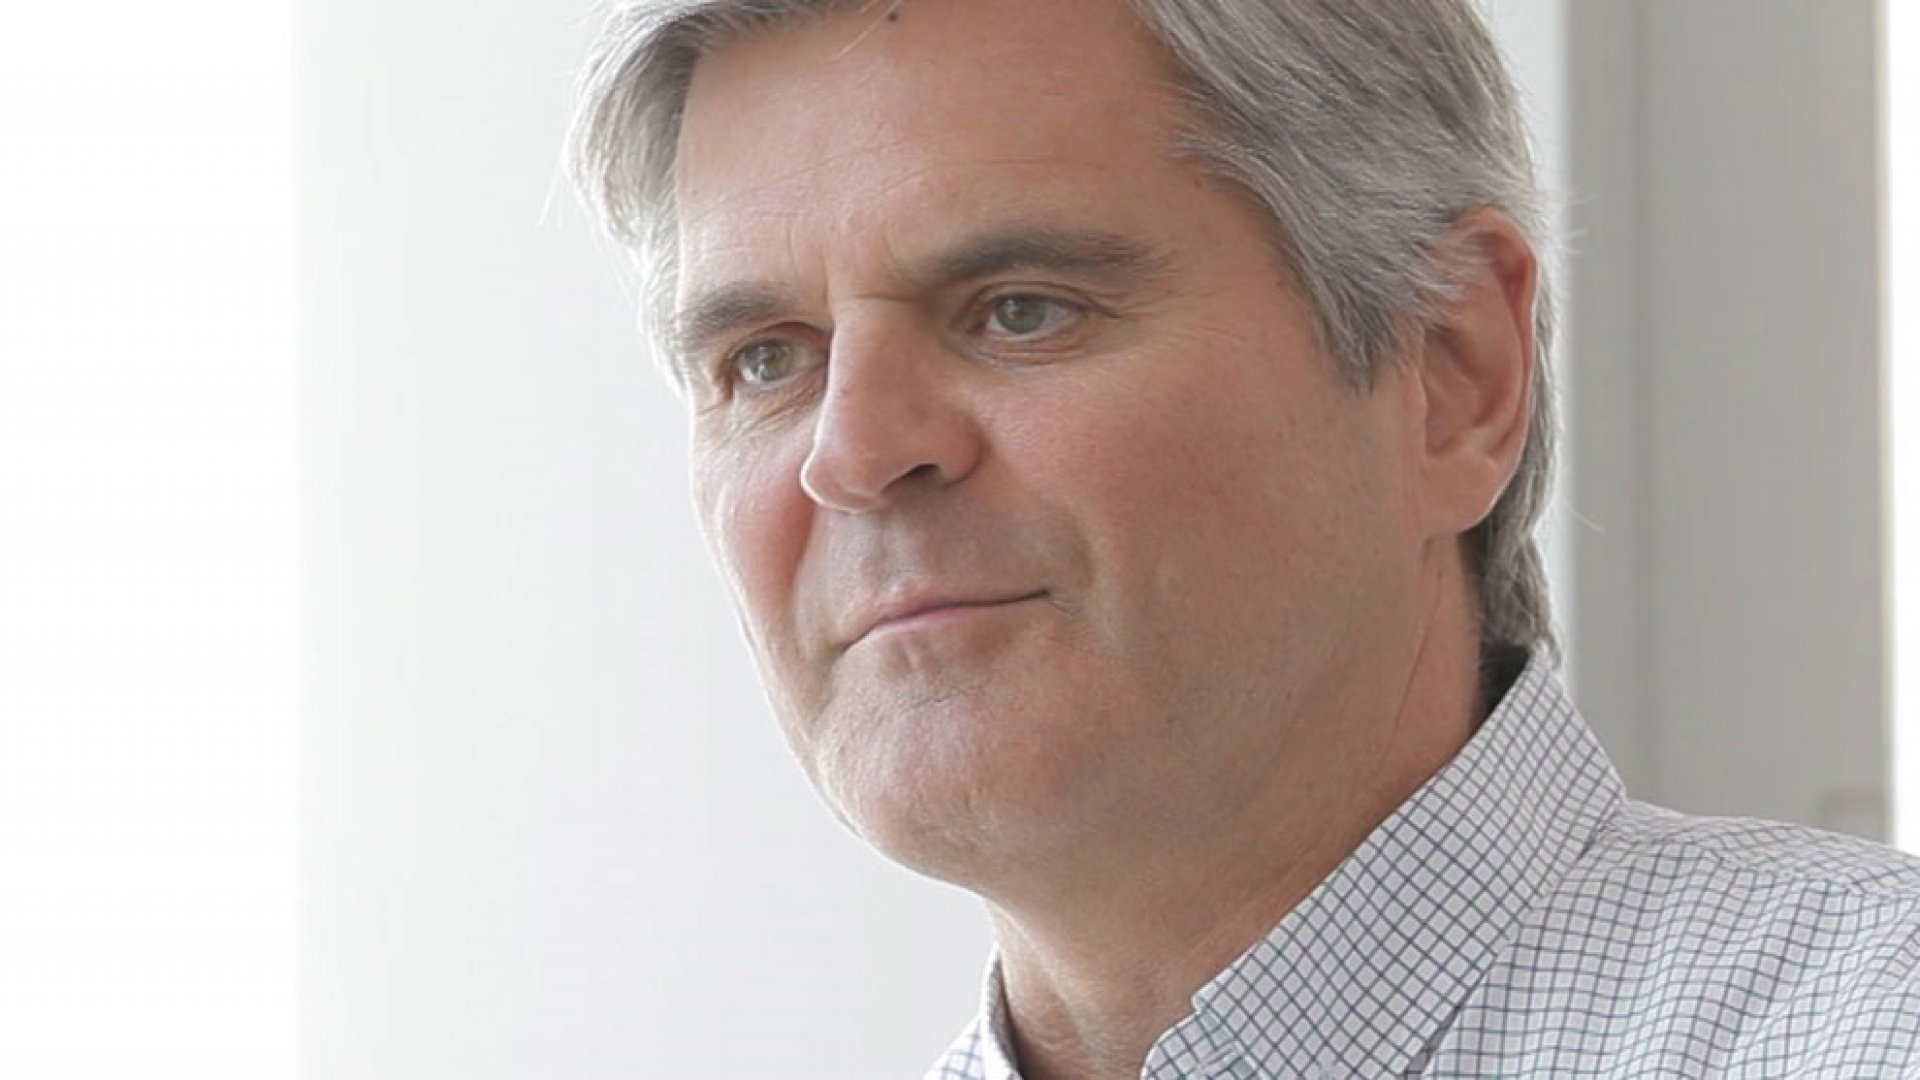 Steve Case on How to Get Your Startup Noticed